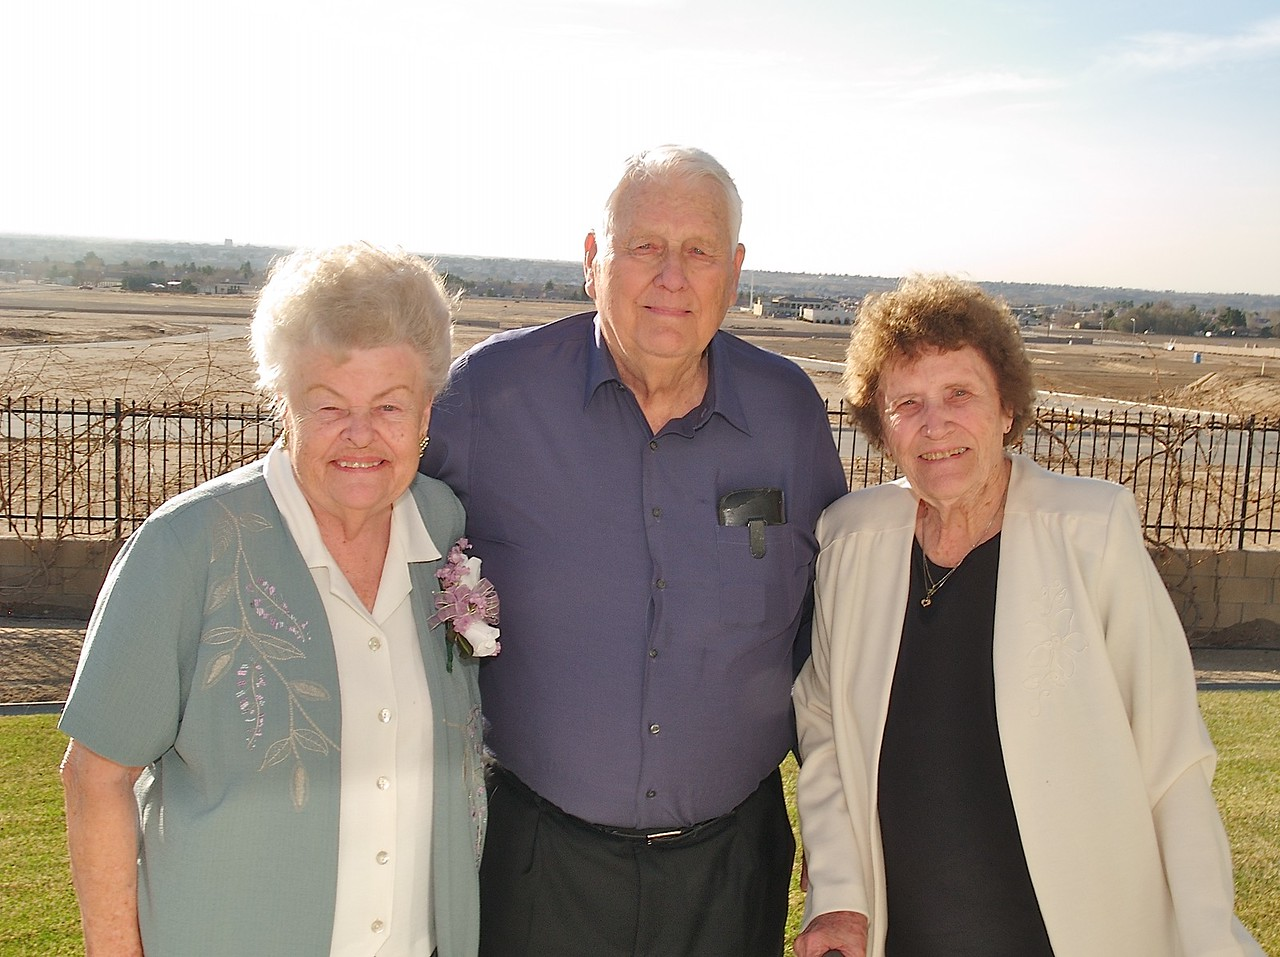 Grandma Ellen and Grandpa Howard with his sister Marge.